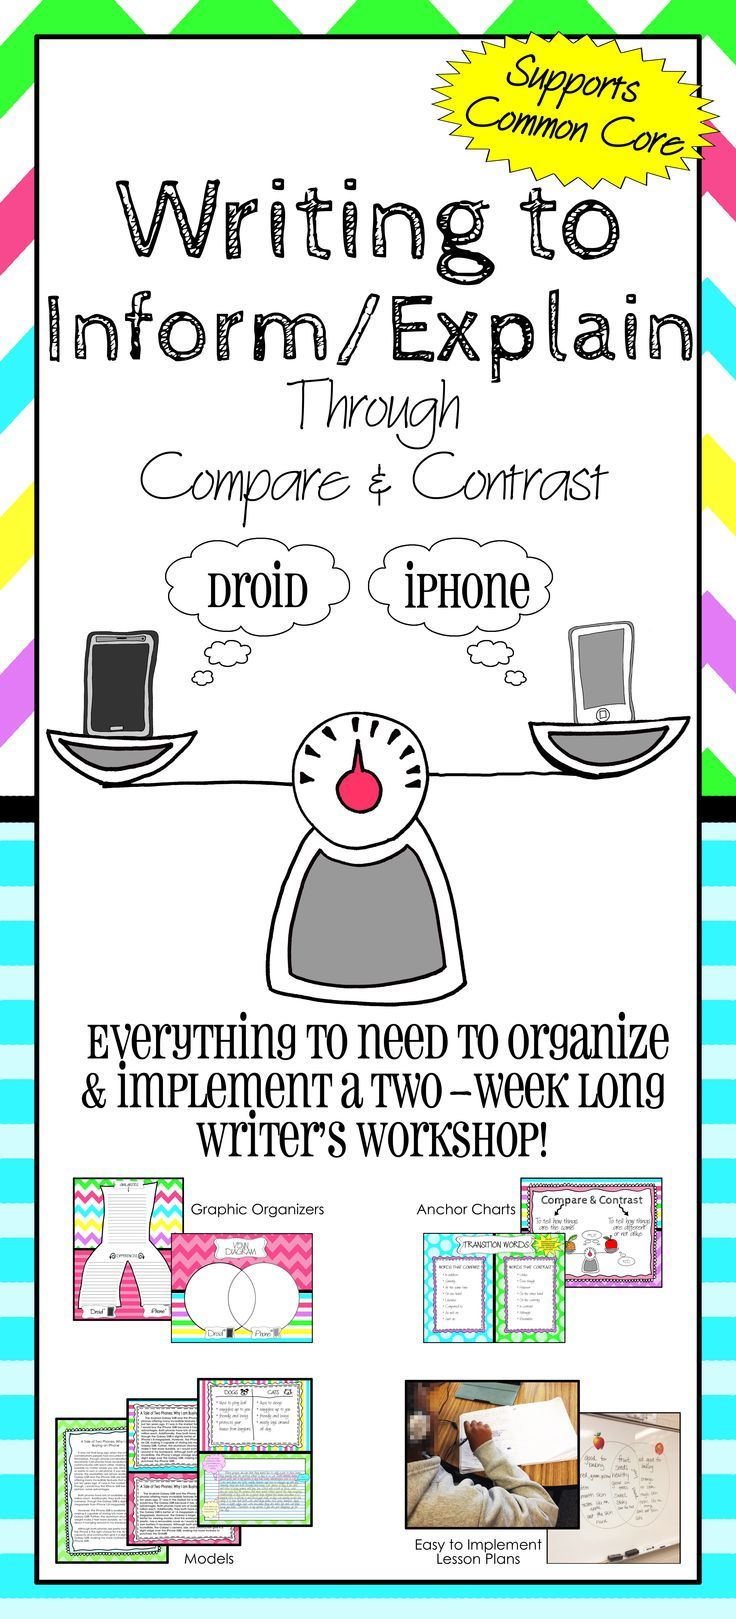 Using Compare and Contrast to Inform/Explain A Writer's